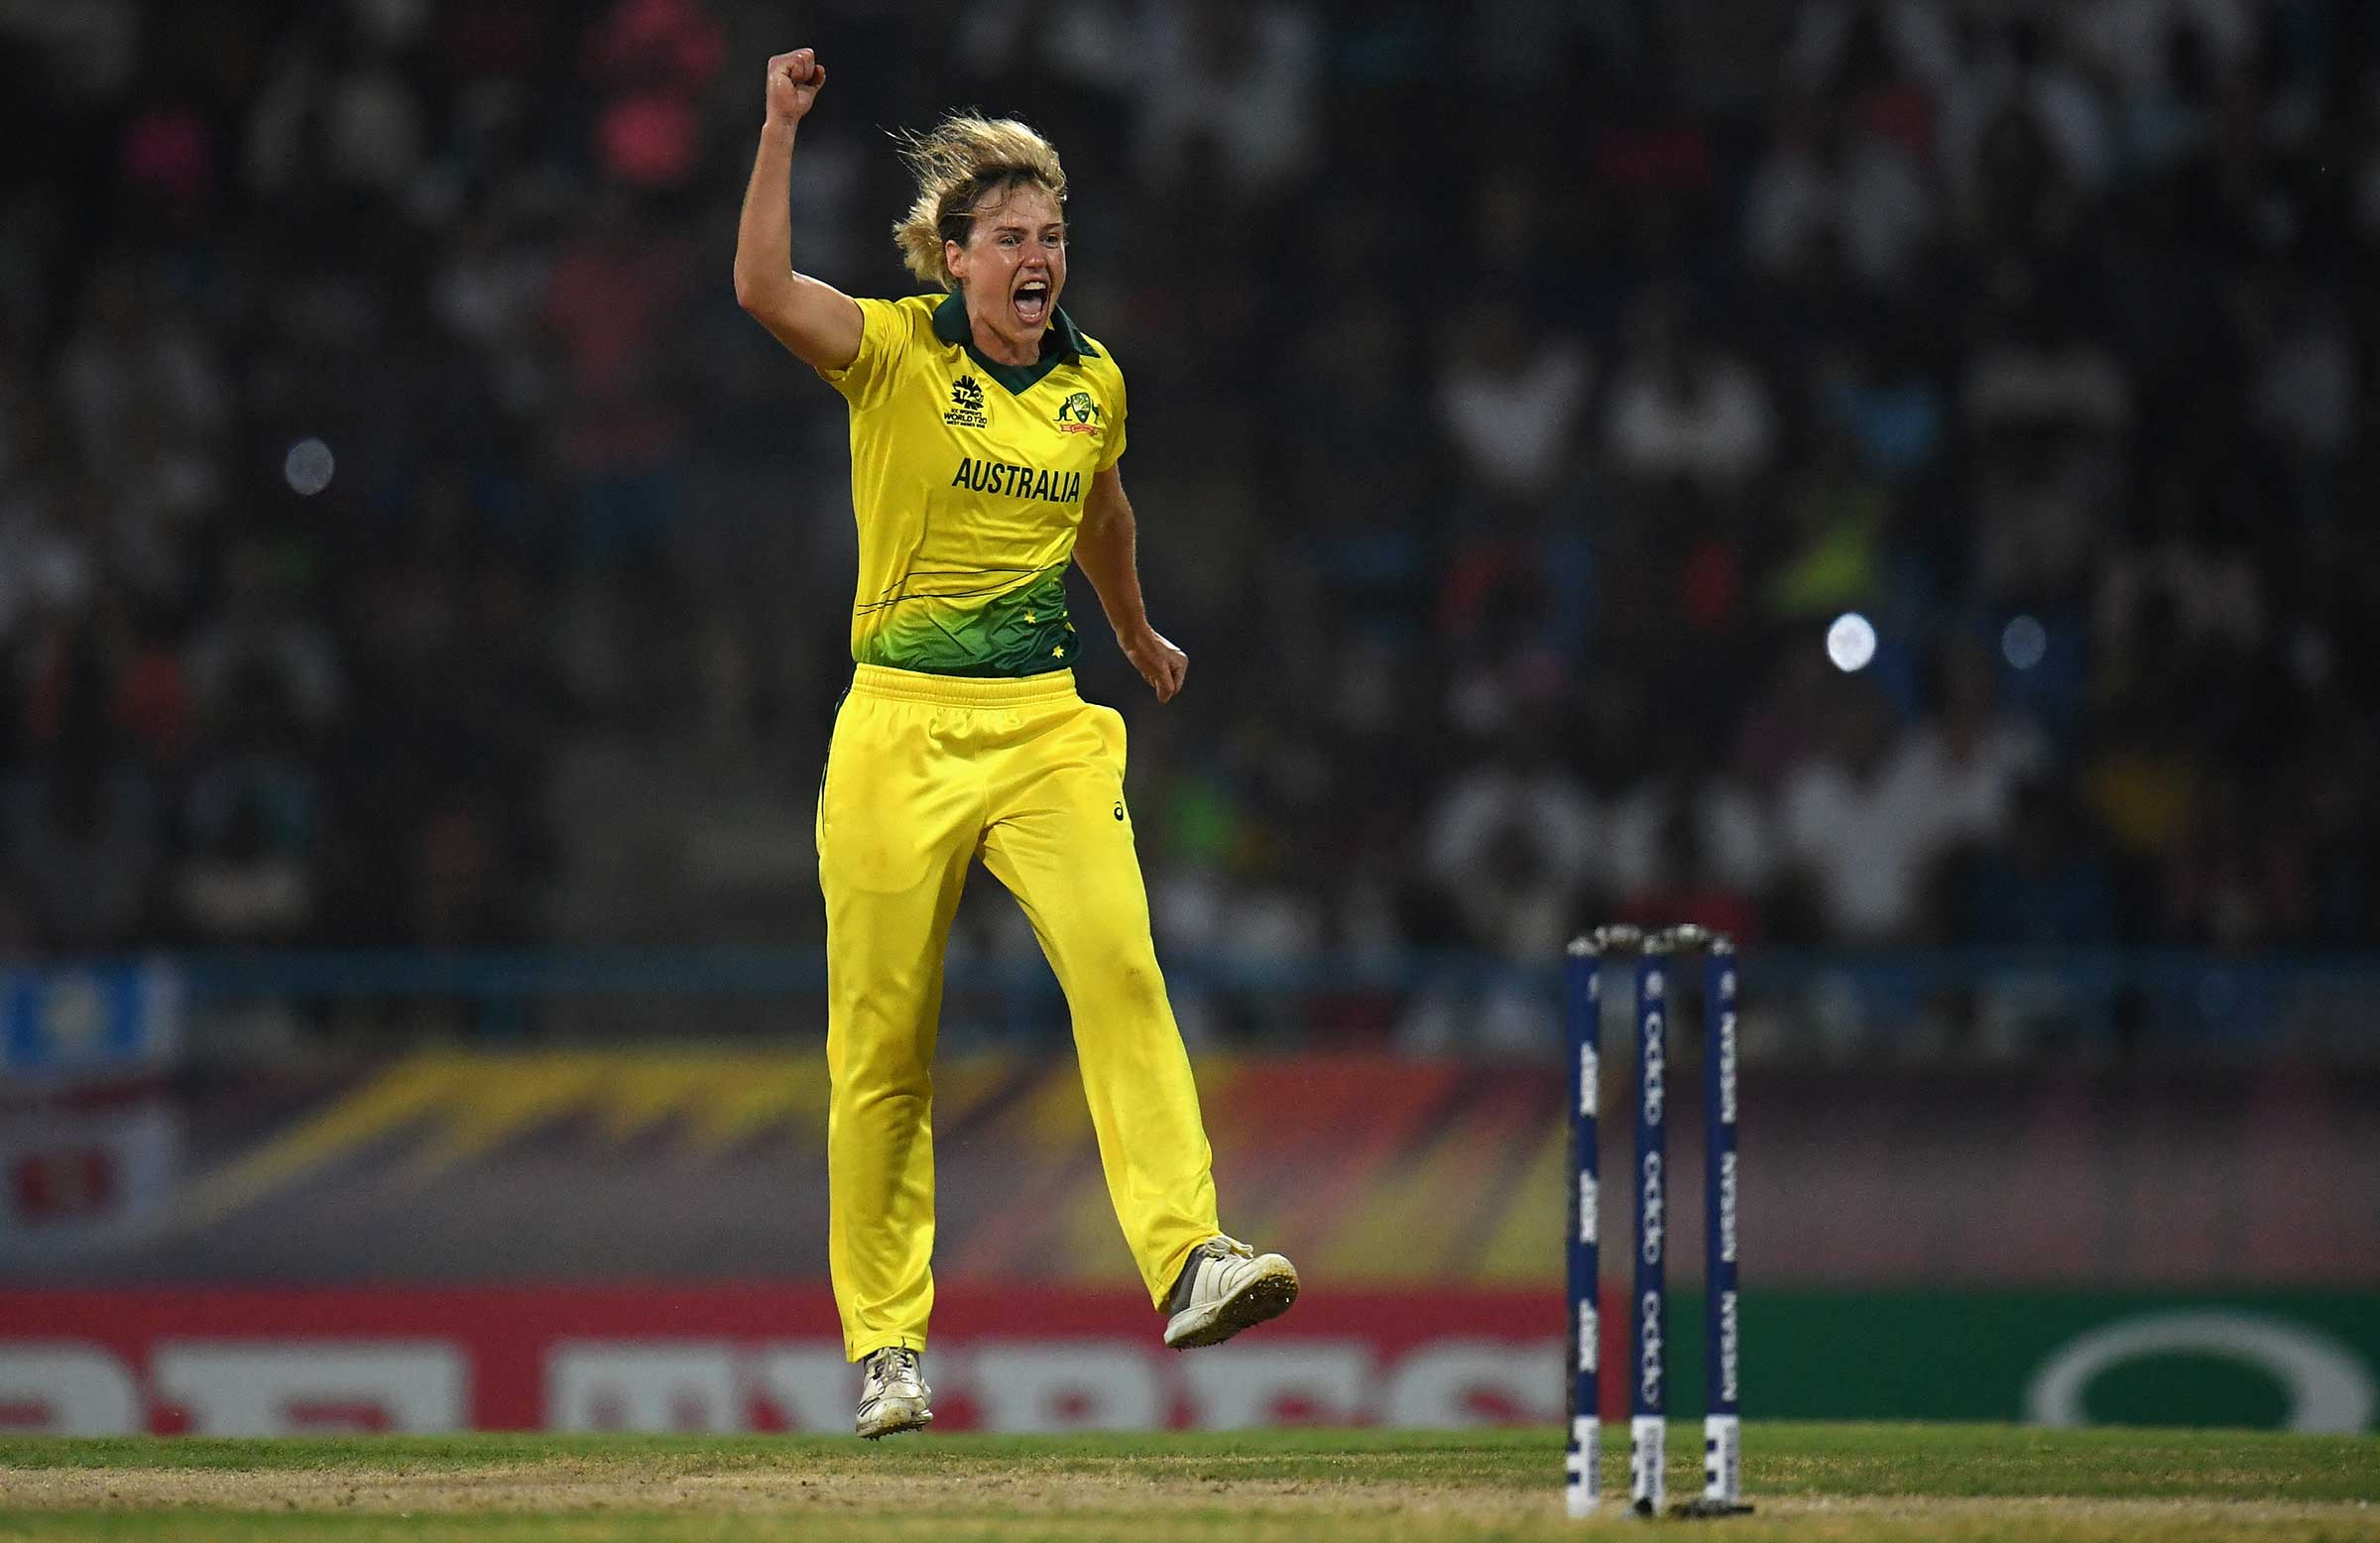 Perry celebrates her 100th T20I scalp // Getty